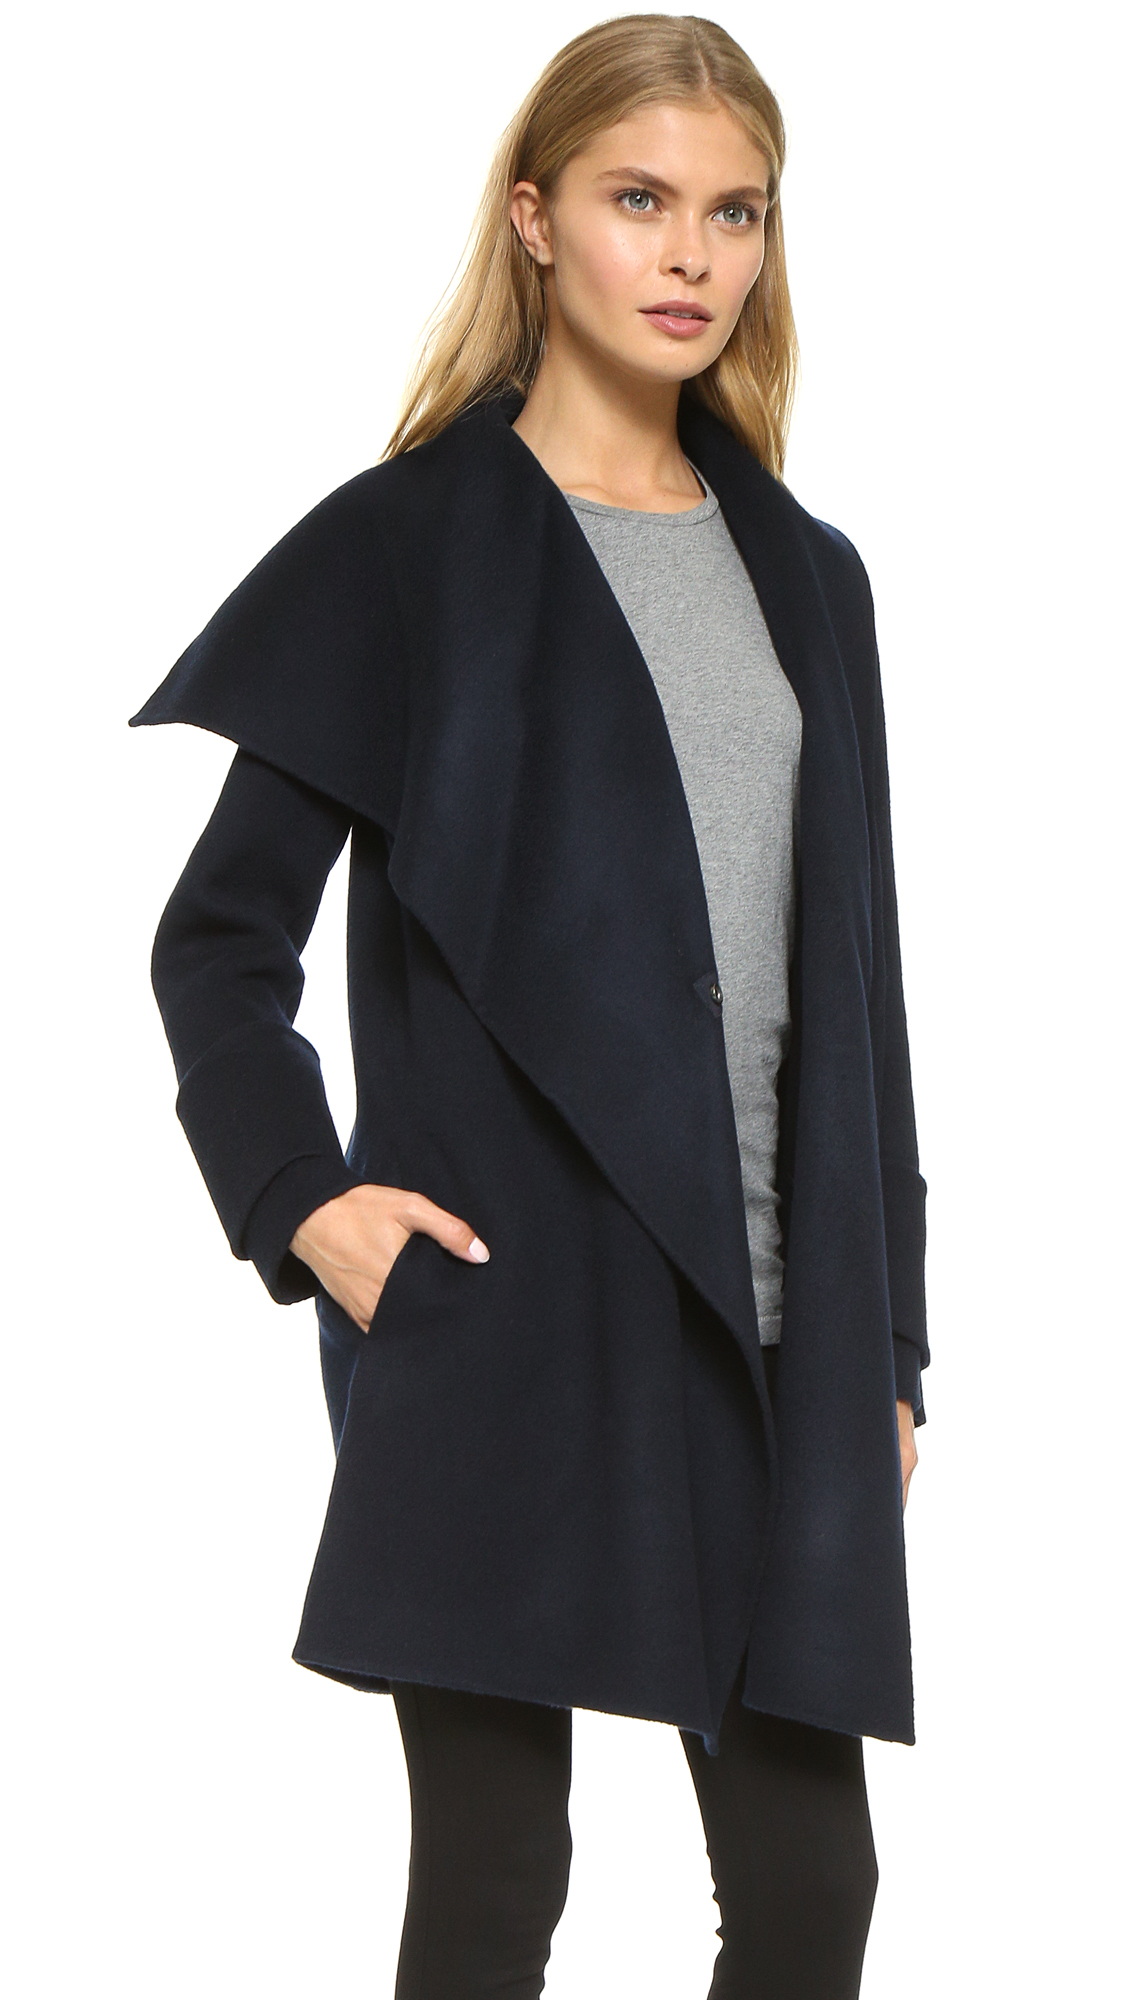 drape blanc jacket dp front drapes noir blar coat vince revolve hooded black in